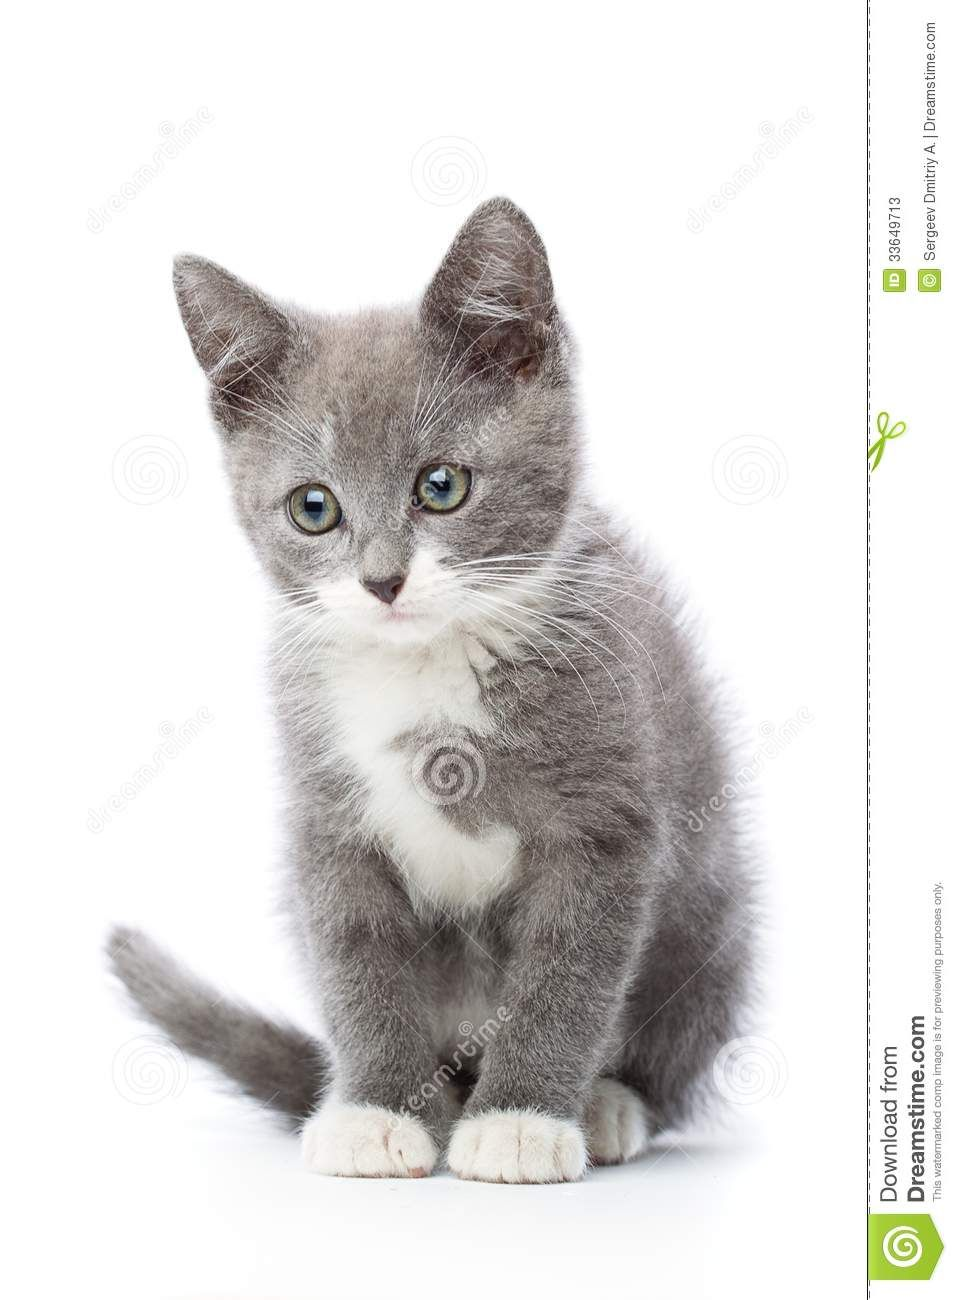 Cats In Care The Ultimate Cat Care Guide Cats In Care Grey And White Kitten White Kittens Grey Kitten